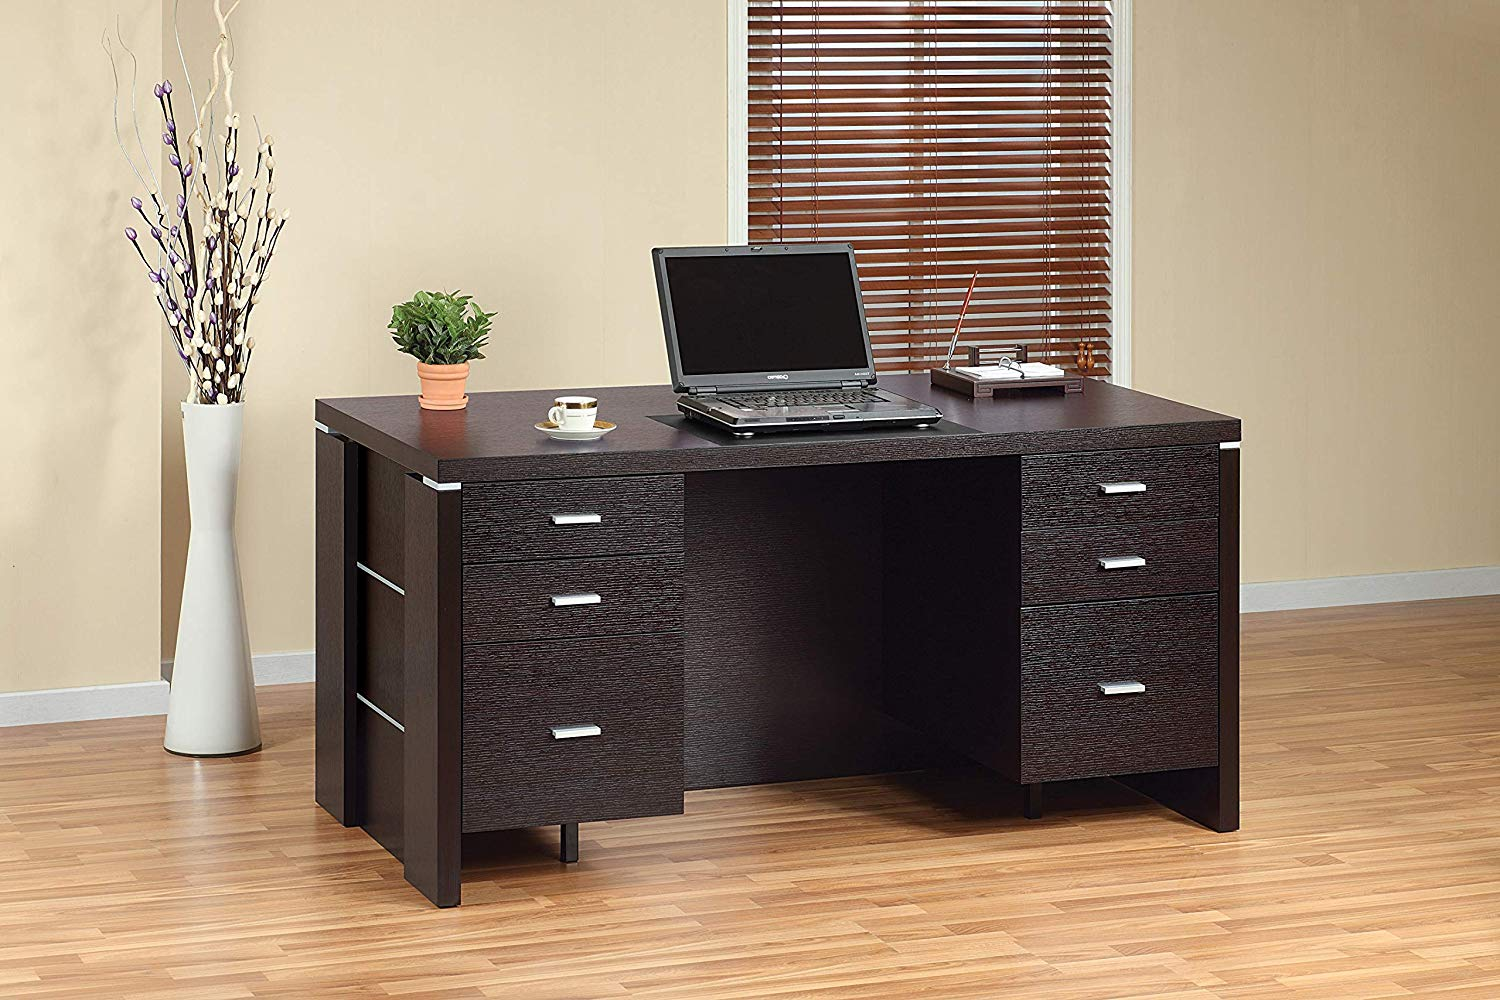 """Major-Q Modern Contemporary Style 30"""" H Home Office Heavy Duty Wooden Desk Workstation Espresso Finish with Drawers (ID8010326)"""